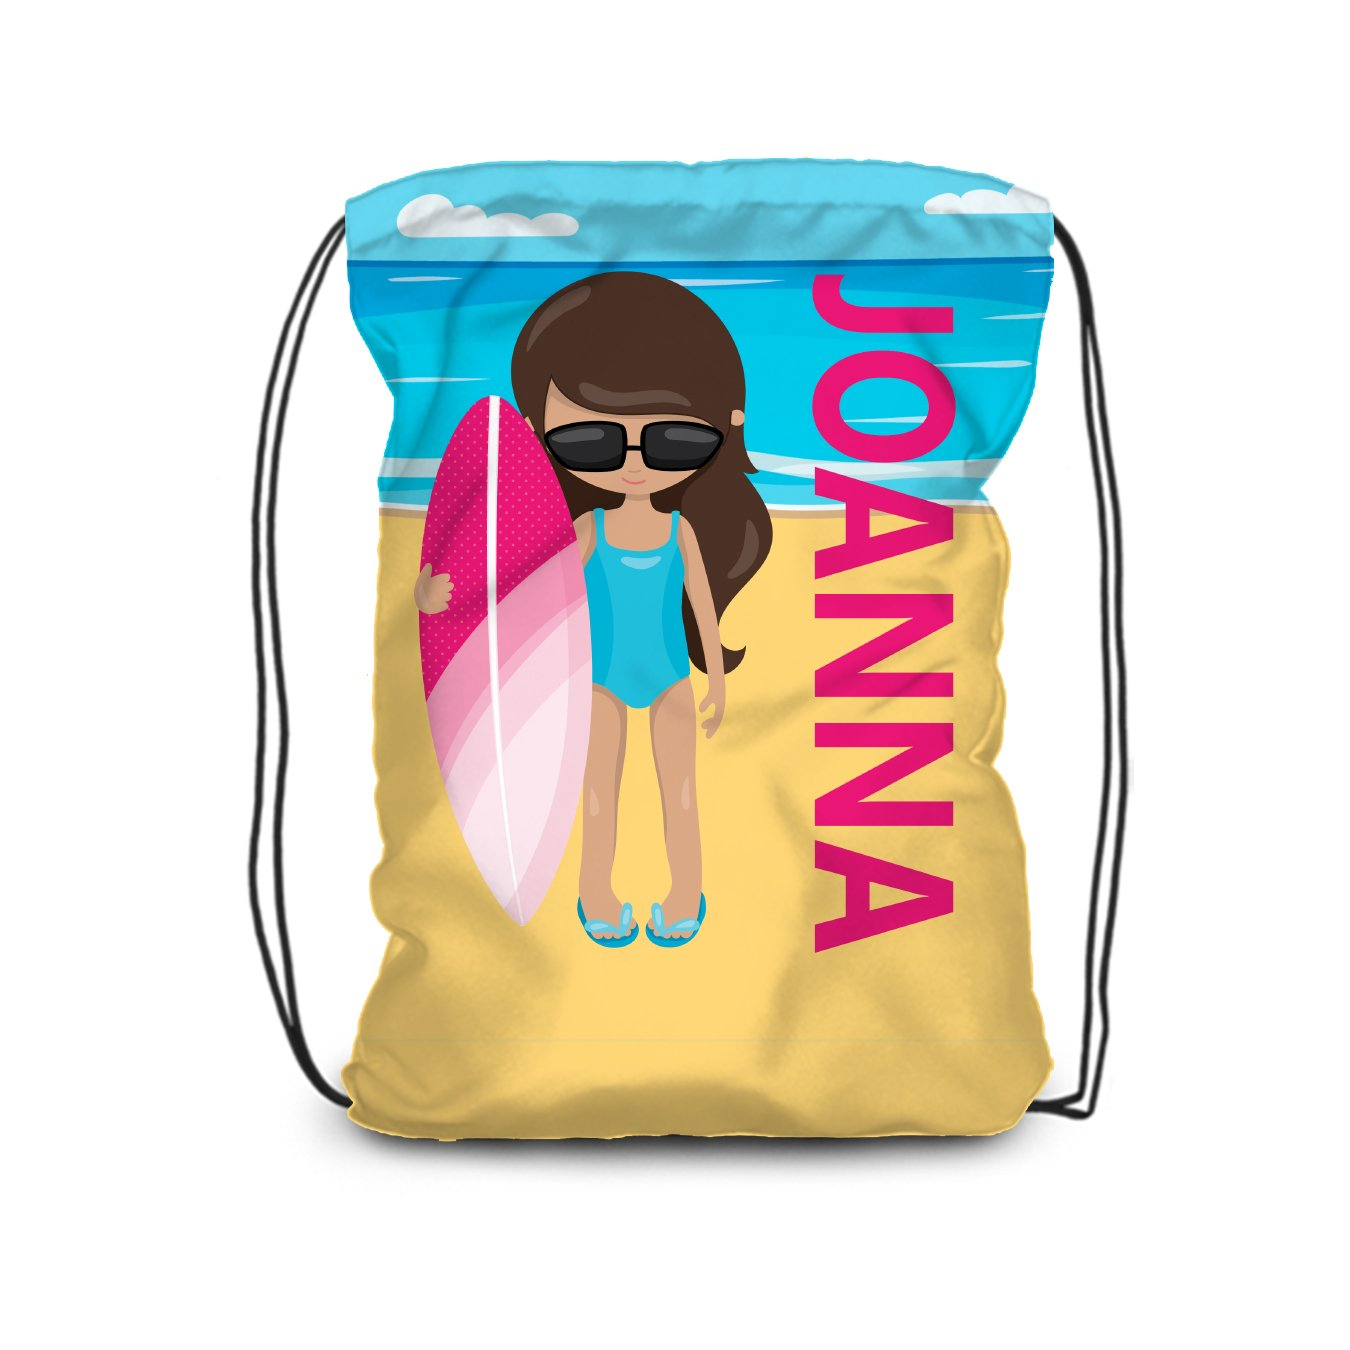 Surf Drawstring Backpack - Sandy Beach Girl Surfer Personalized Name Bag